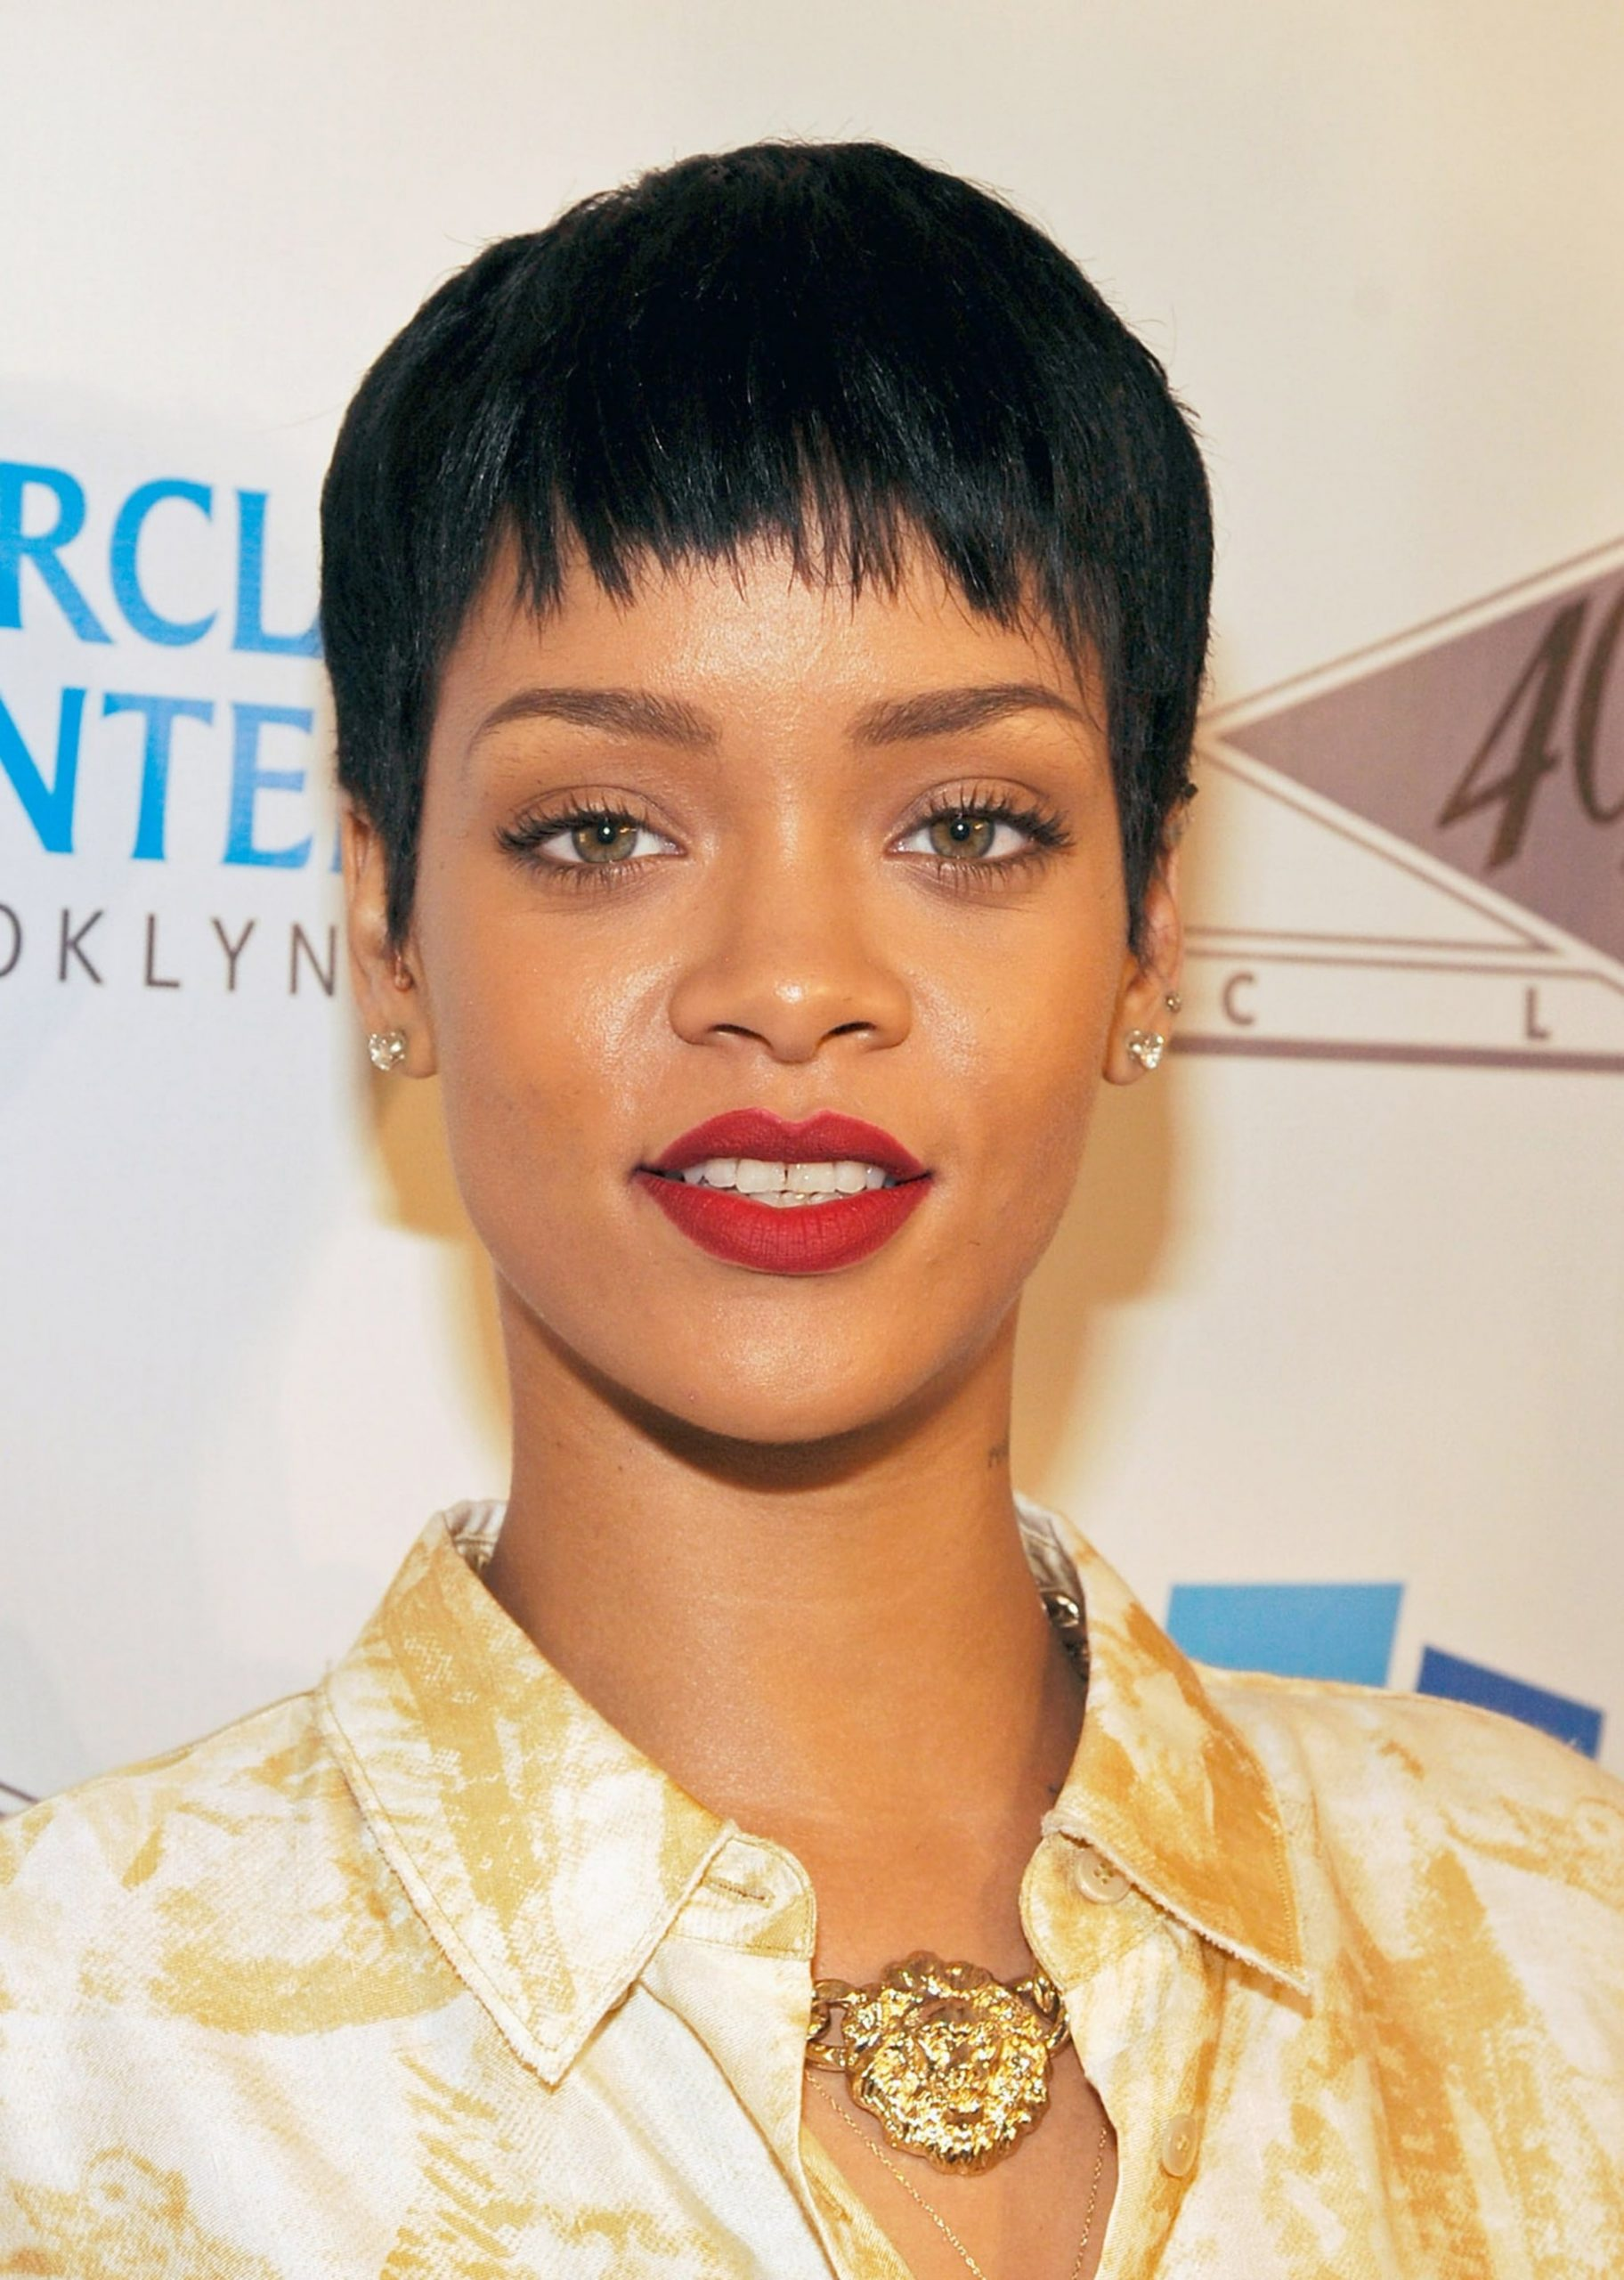 Rihanna With a Pixie Cut  8 Celebrity Pixie Haircuts That Will